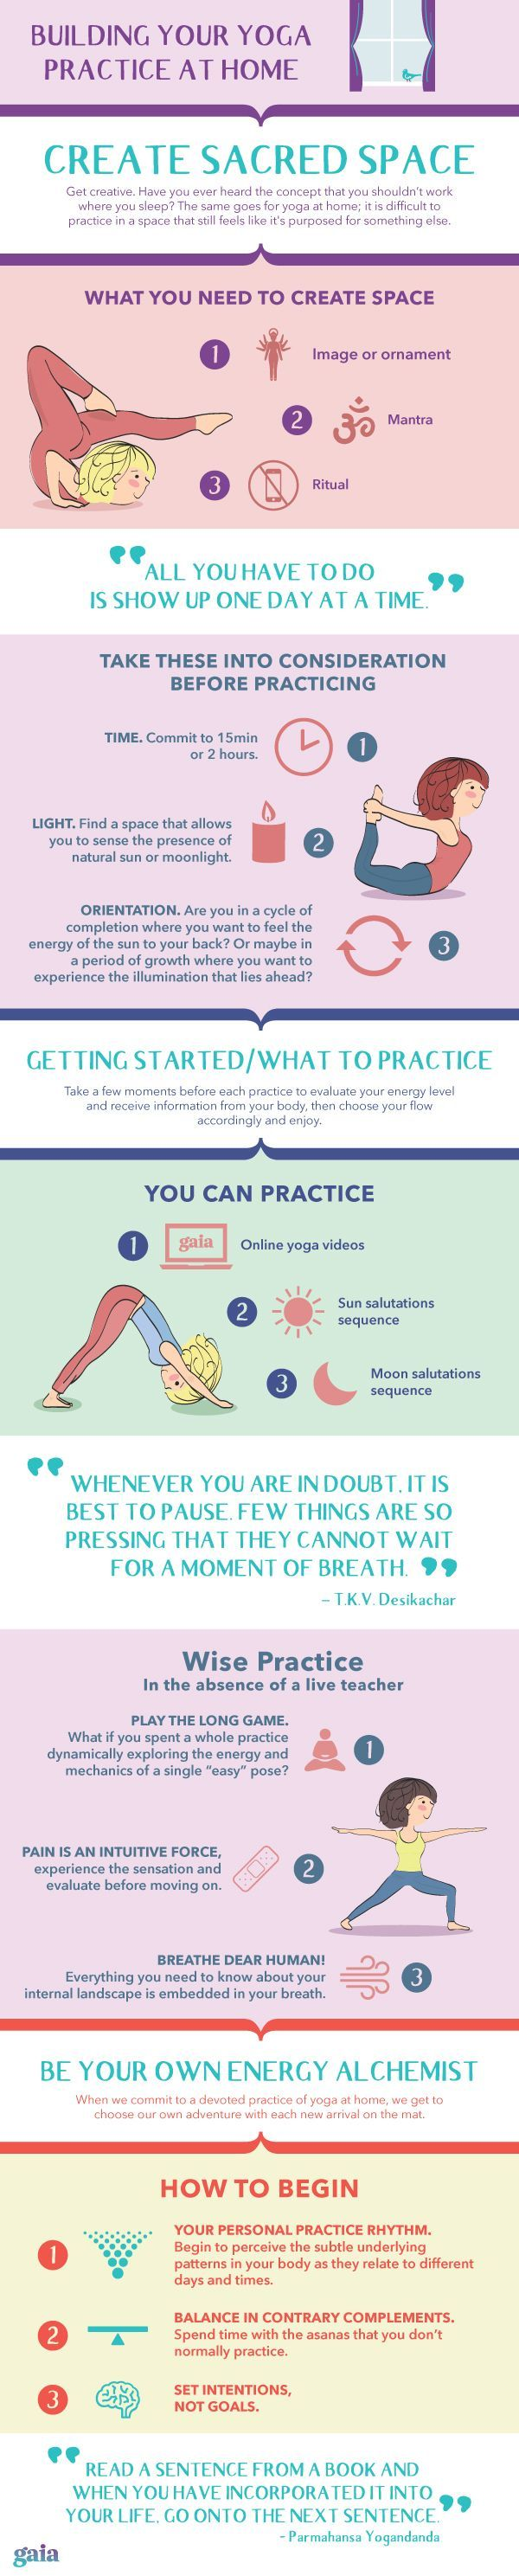 How To Get Started With A Yoga Practice At Home